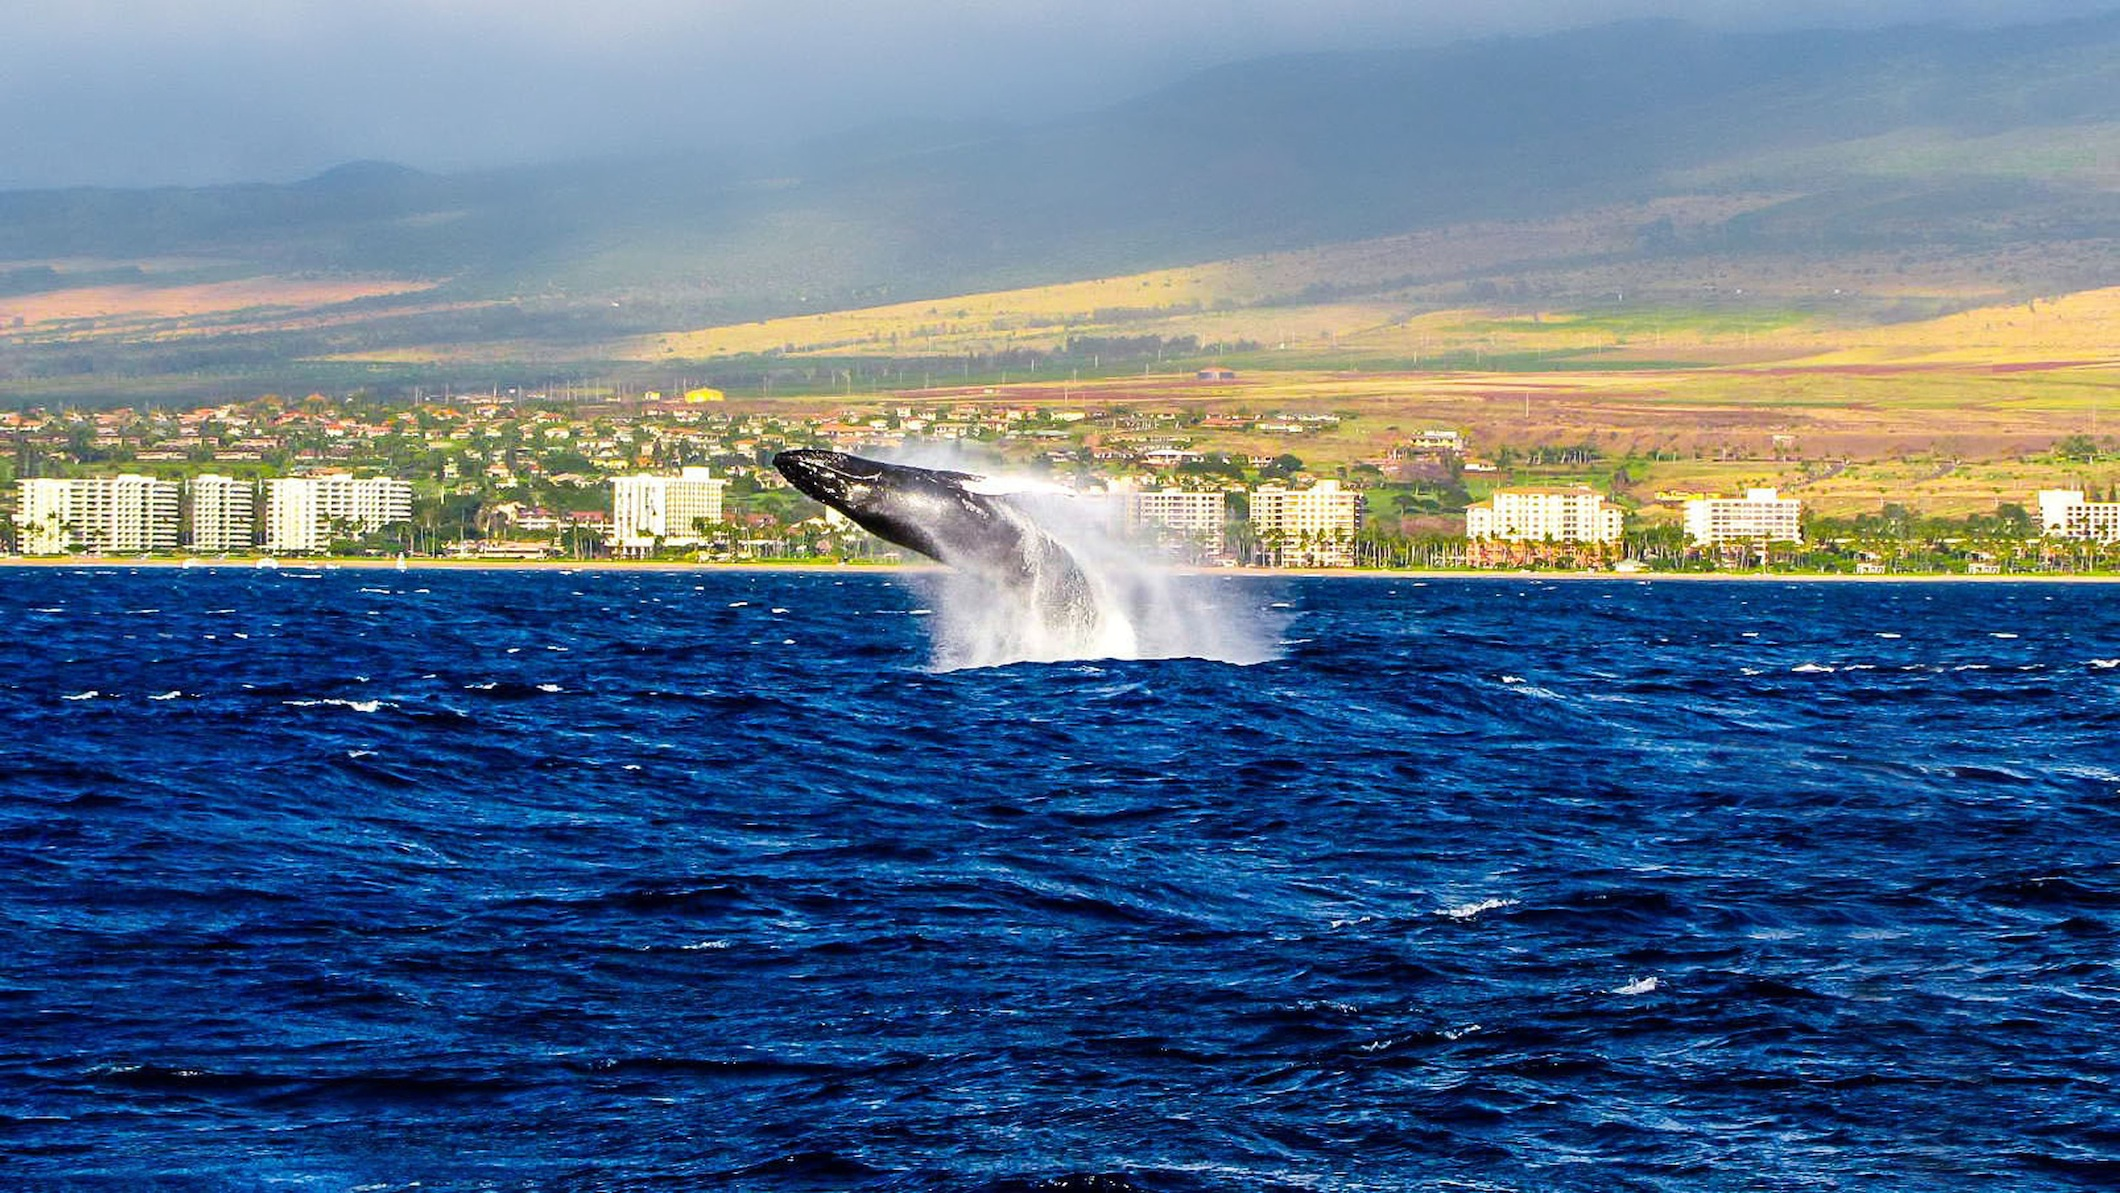 Hawaii - Kaanapali Coast Whale.jpg